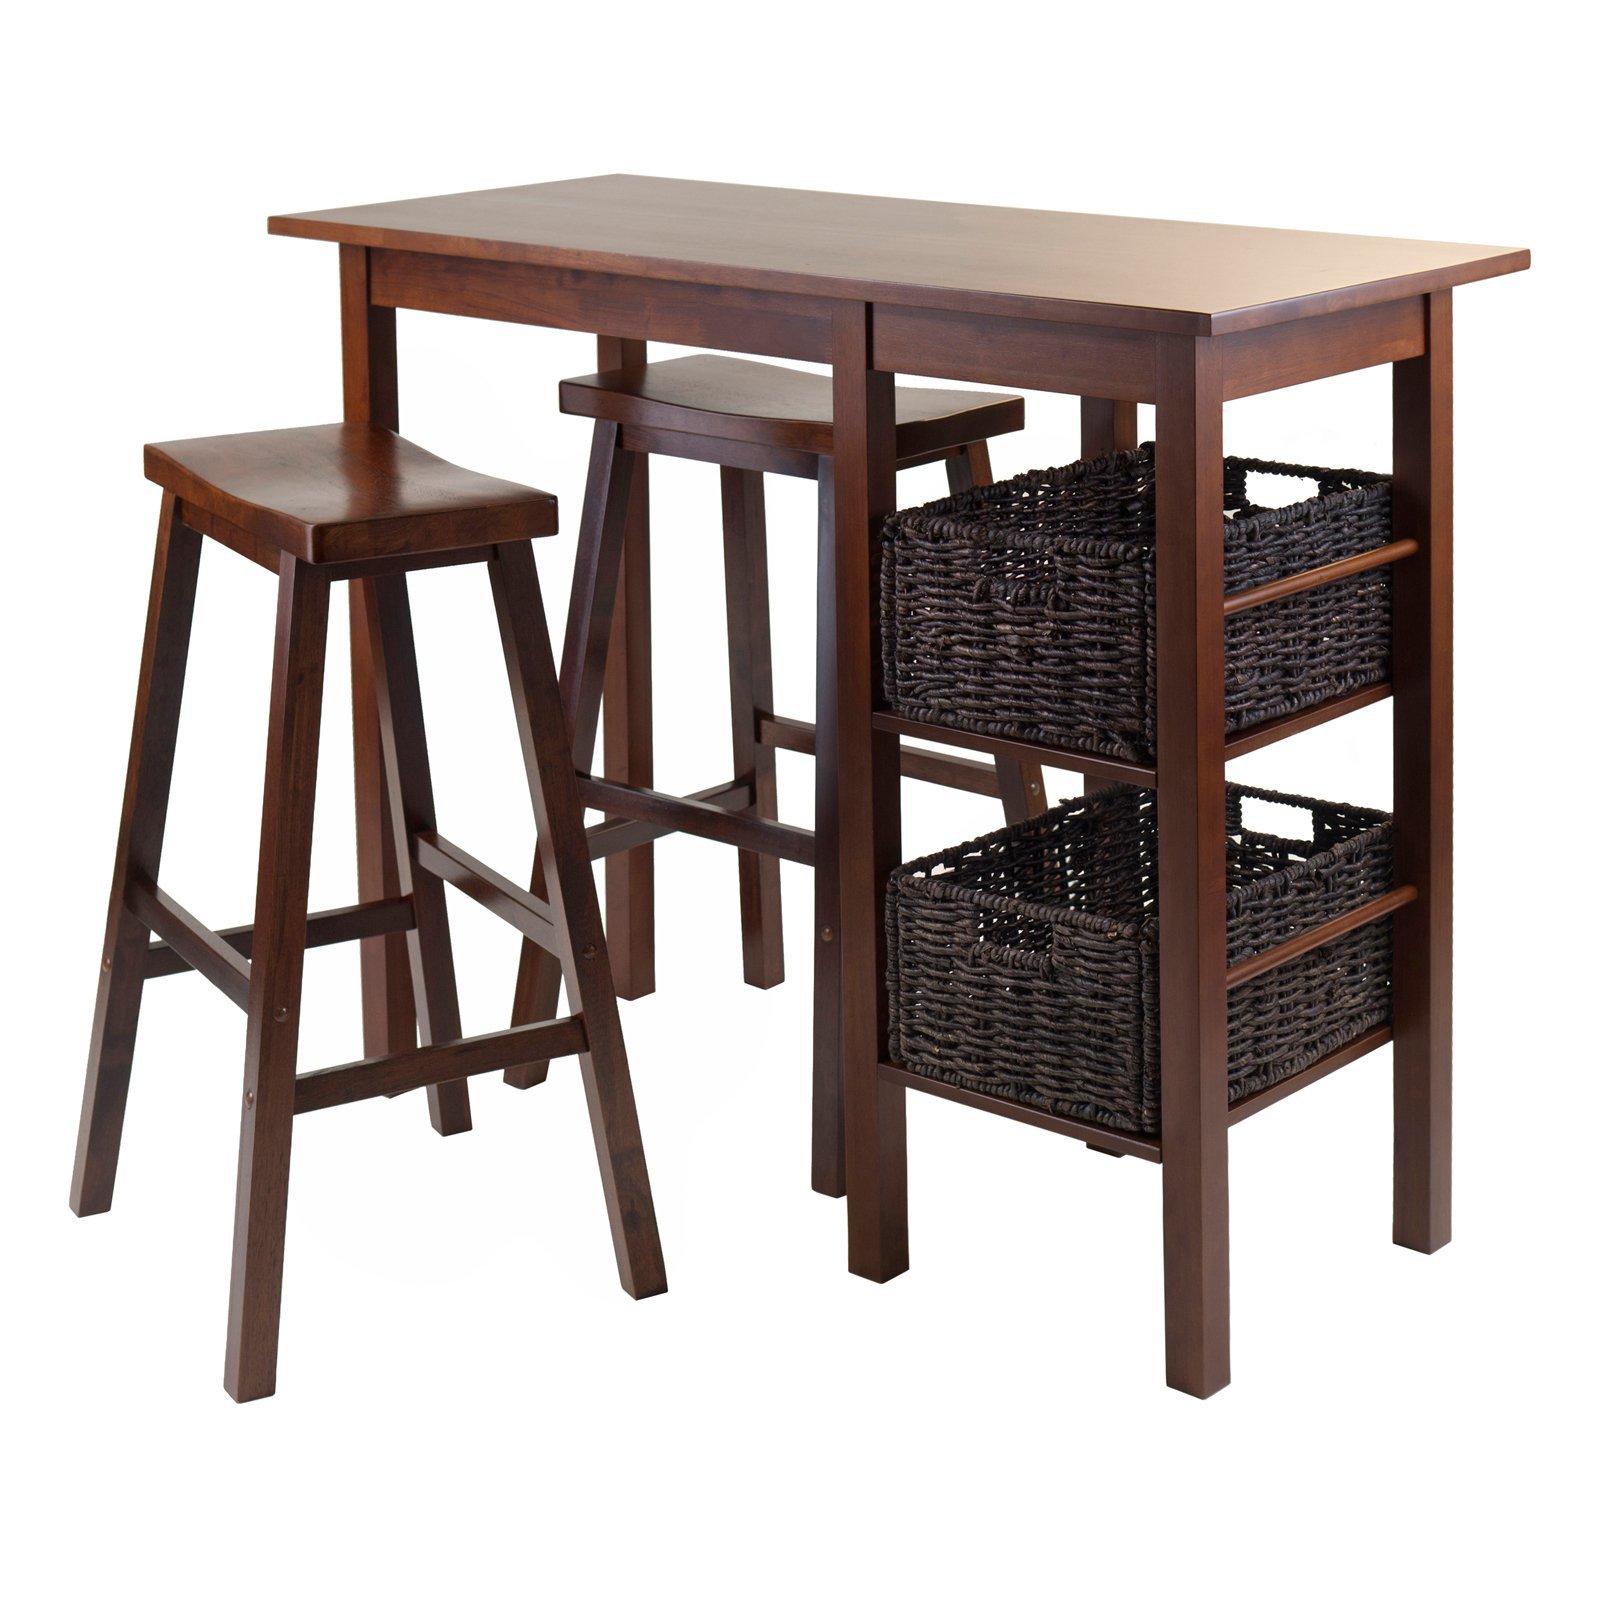 Winsome Wood Egan 5pc Table W Saddle Seat Bar Stools And 2 Baskets